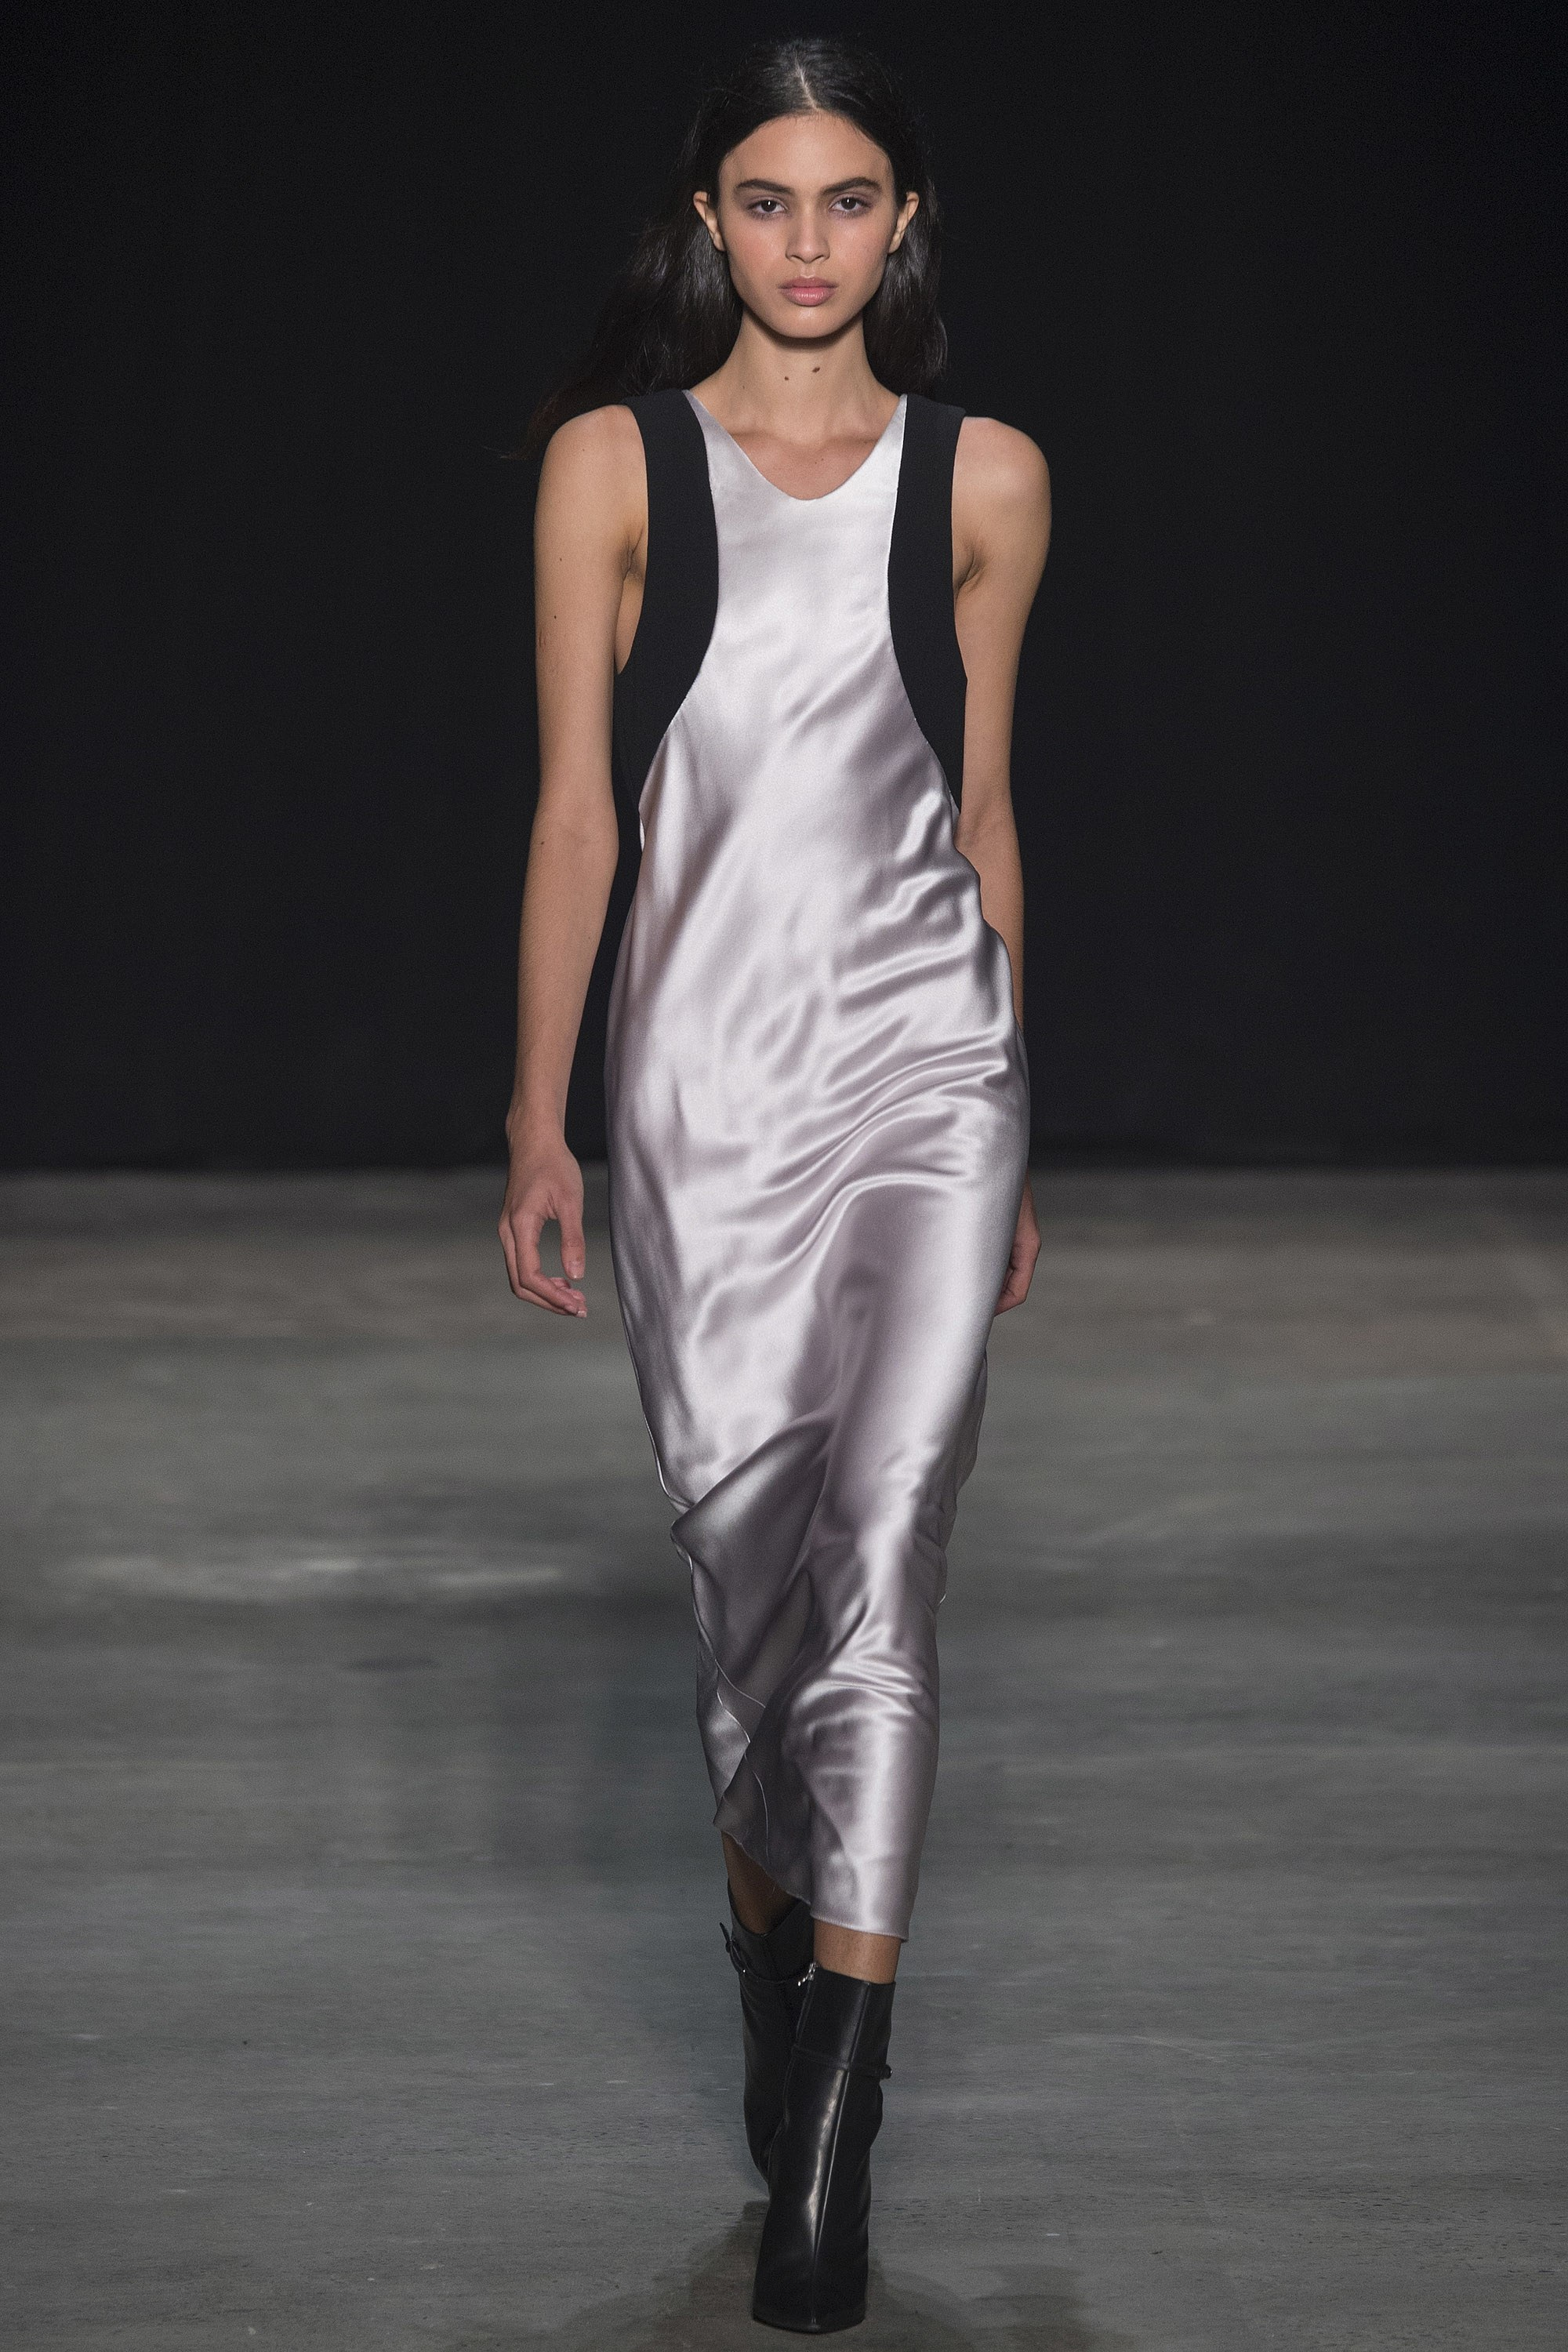 Easy breezy greyscale dress with a mod cut.  Narciso Rodriguez, Courtesy of Vogue.